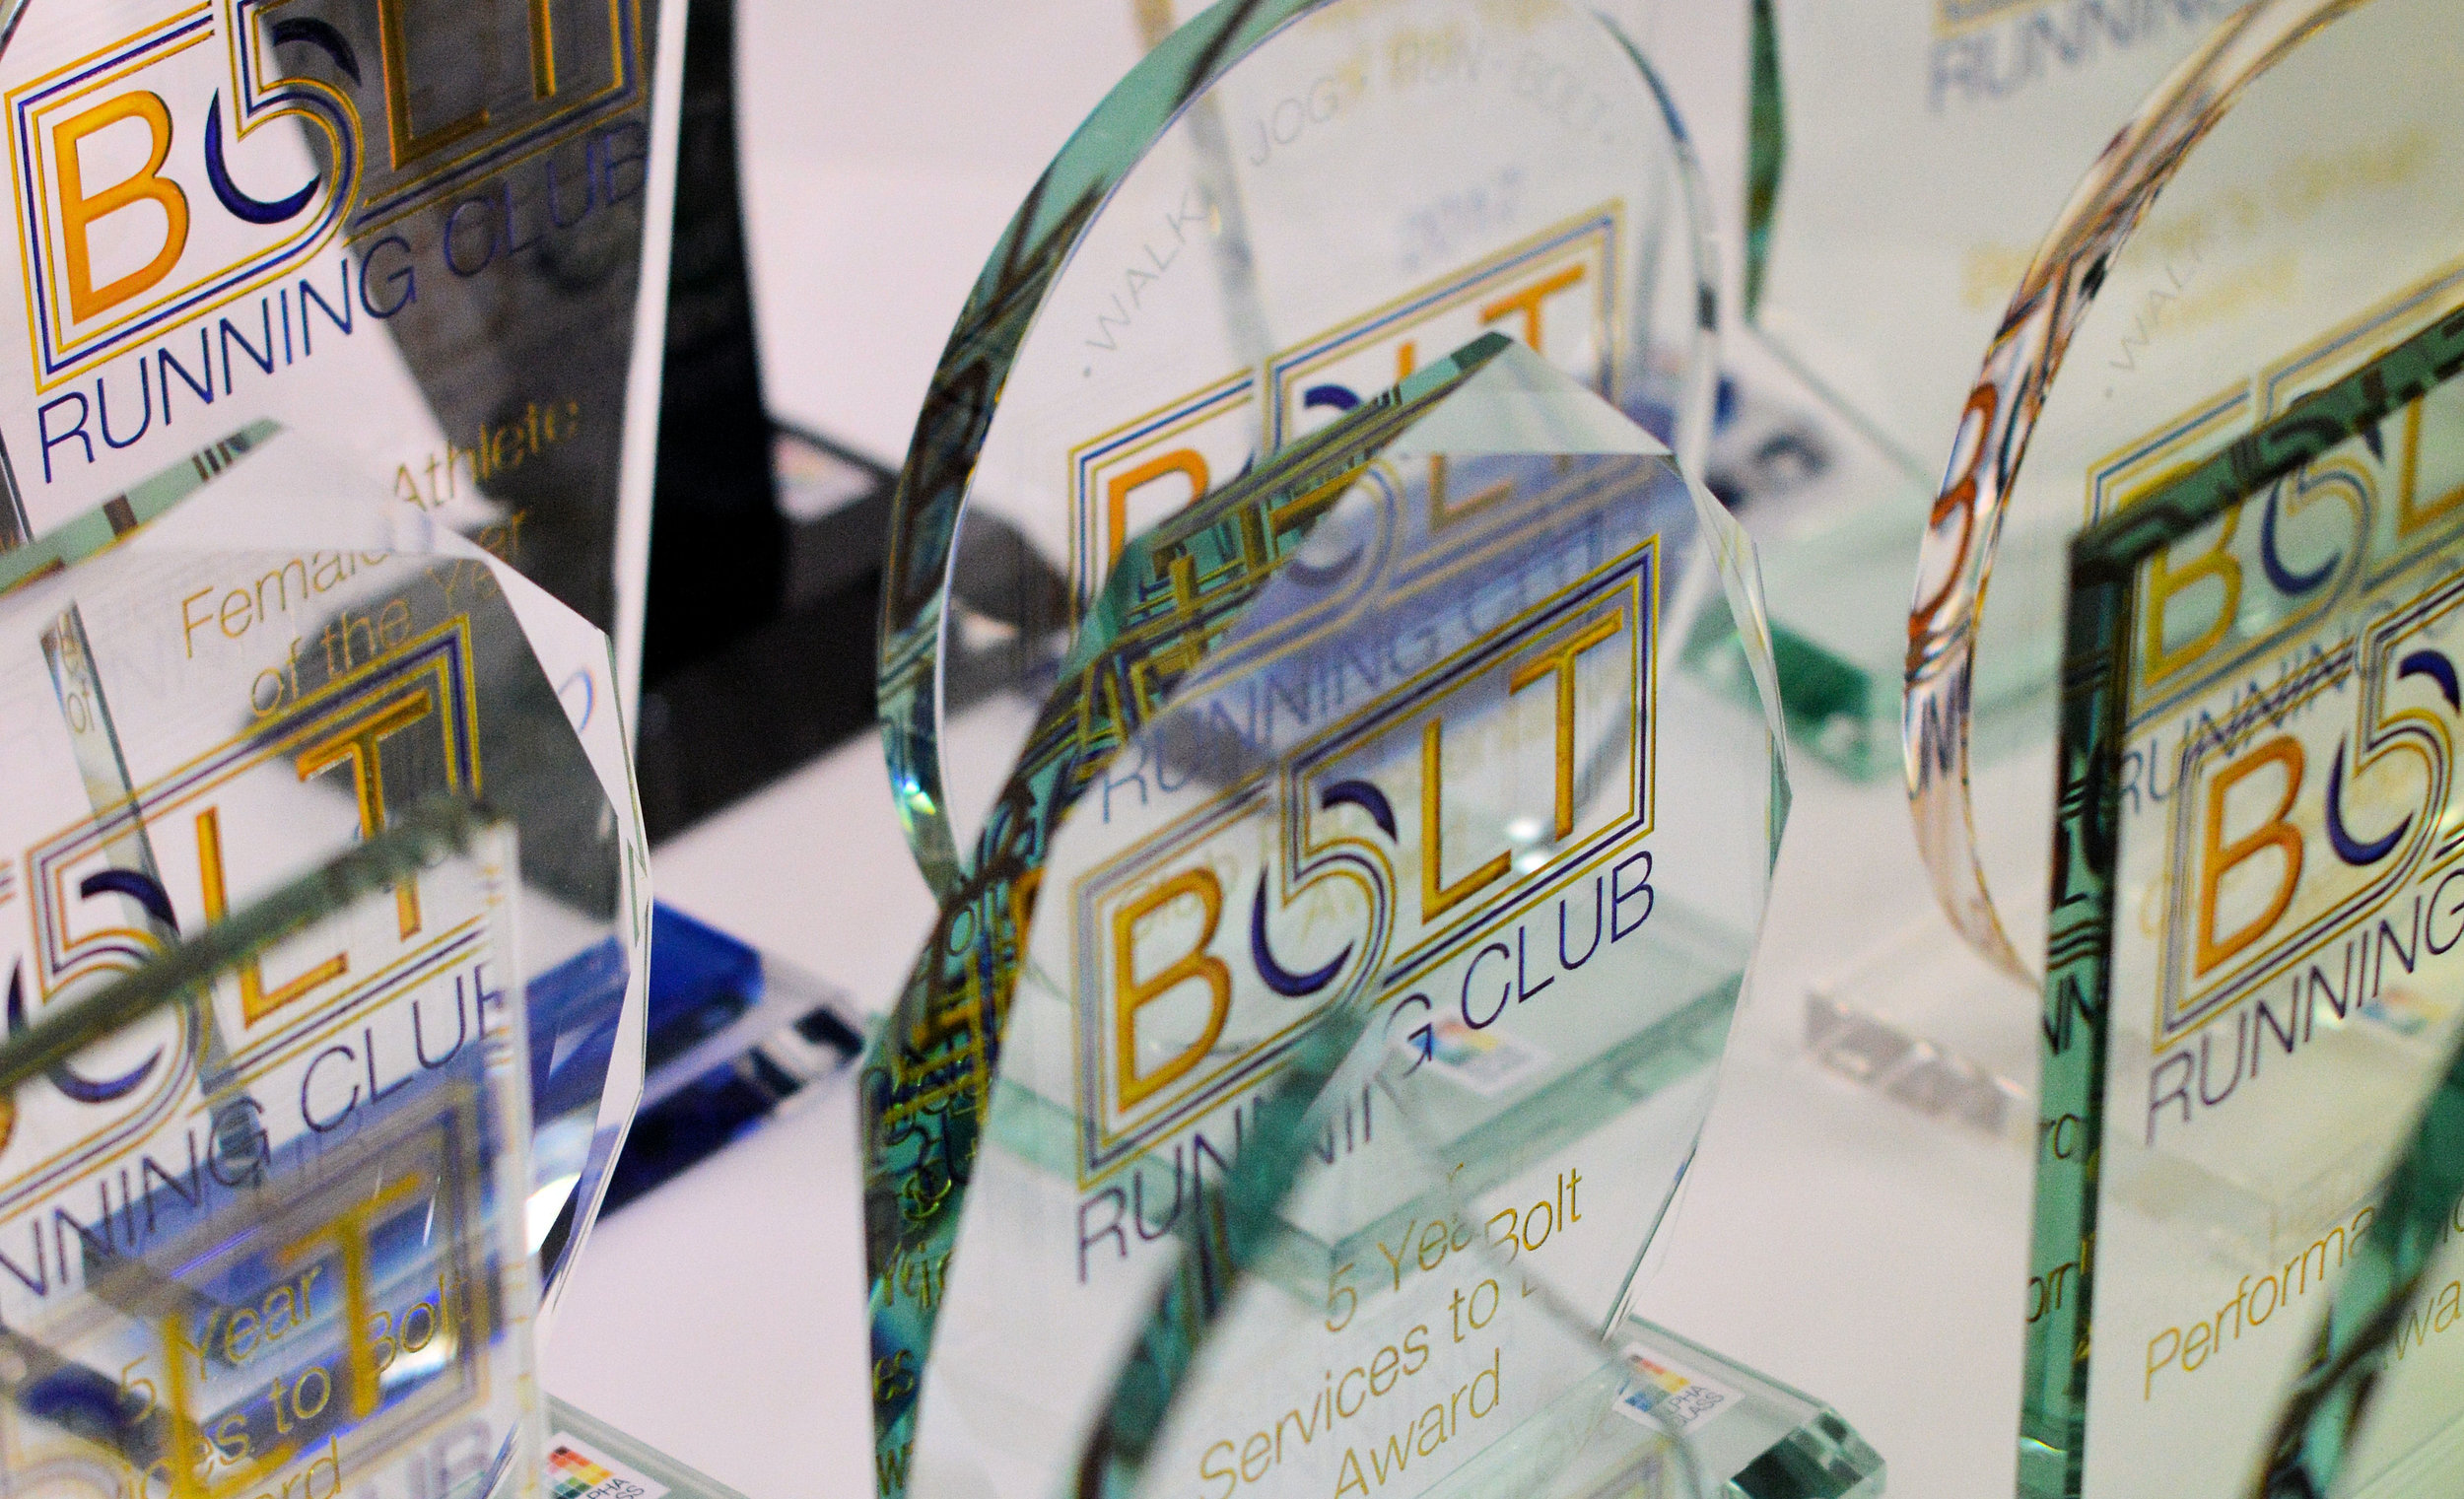 Bolt Running Club Awards - Annual Awards night 15th September 2017